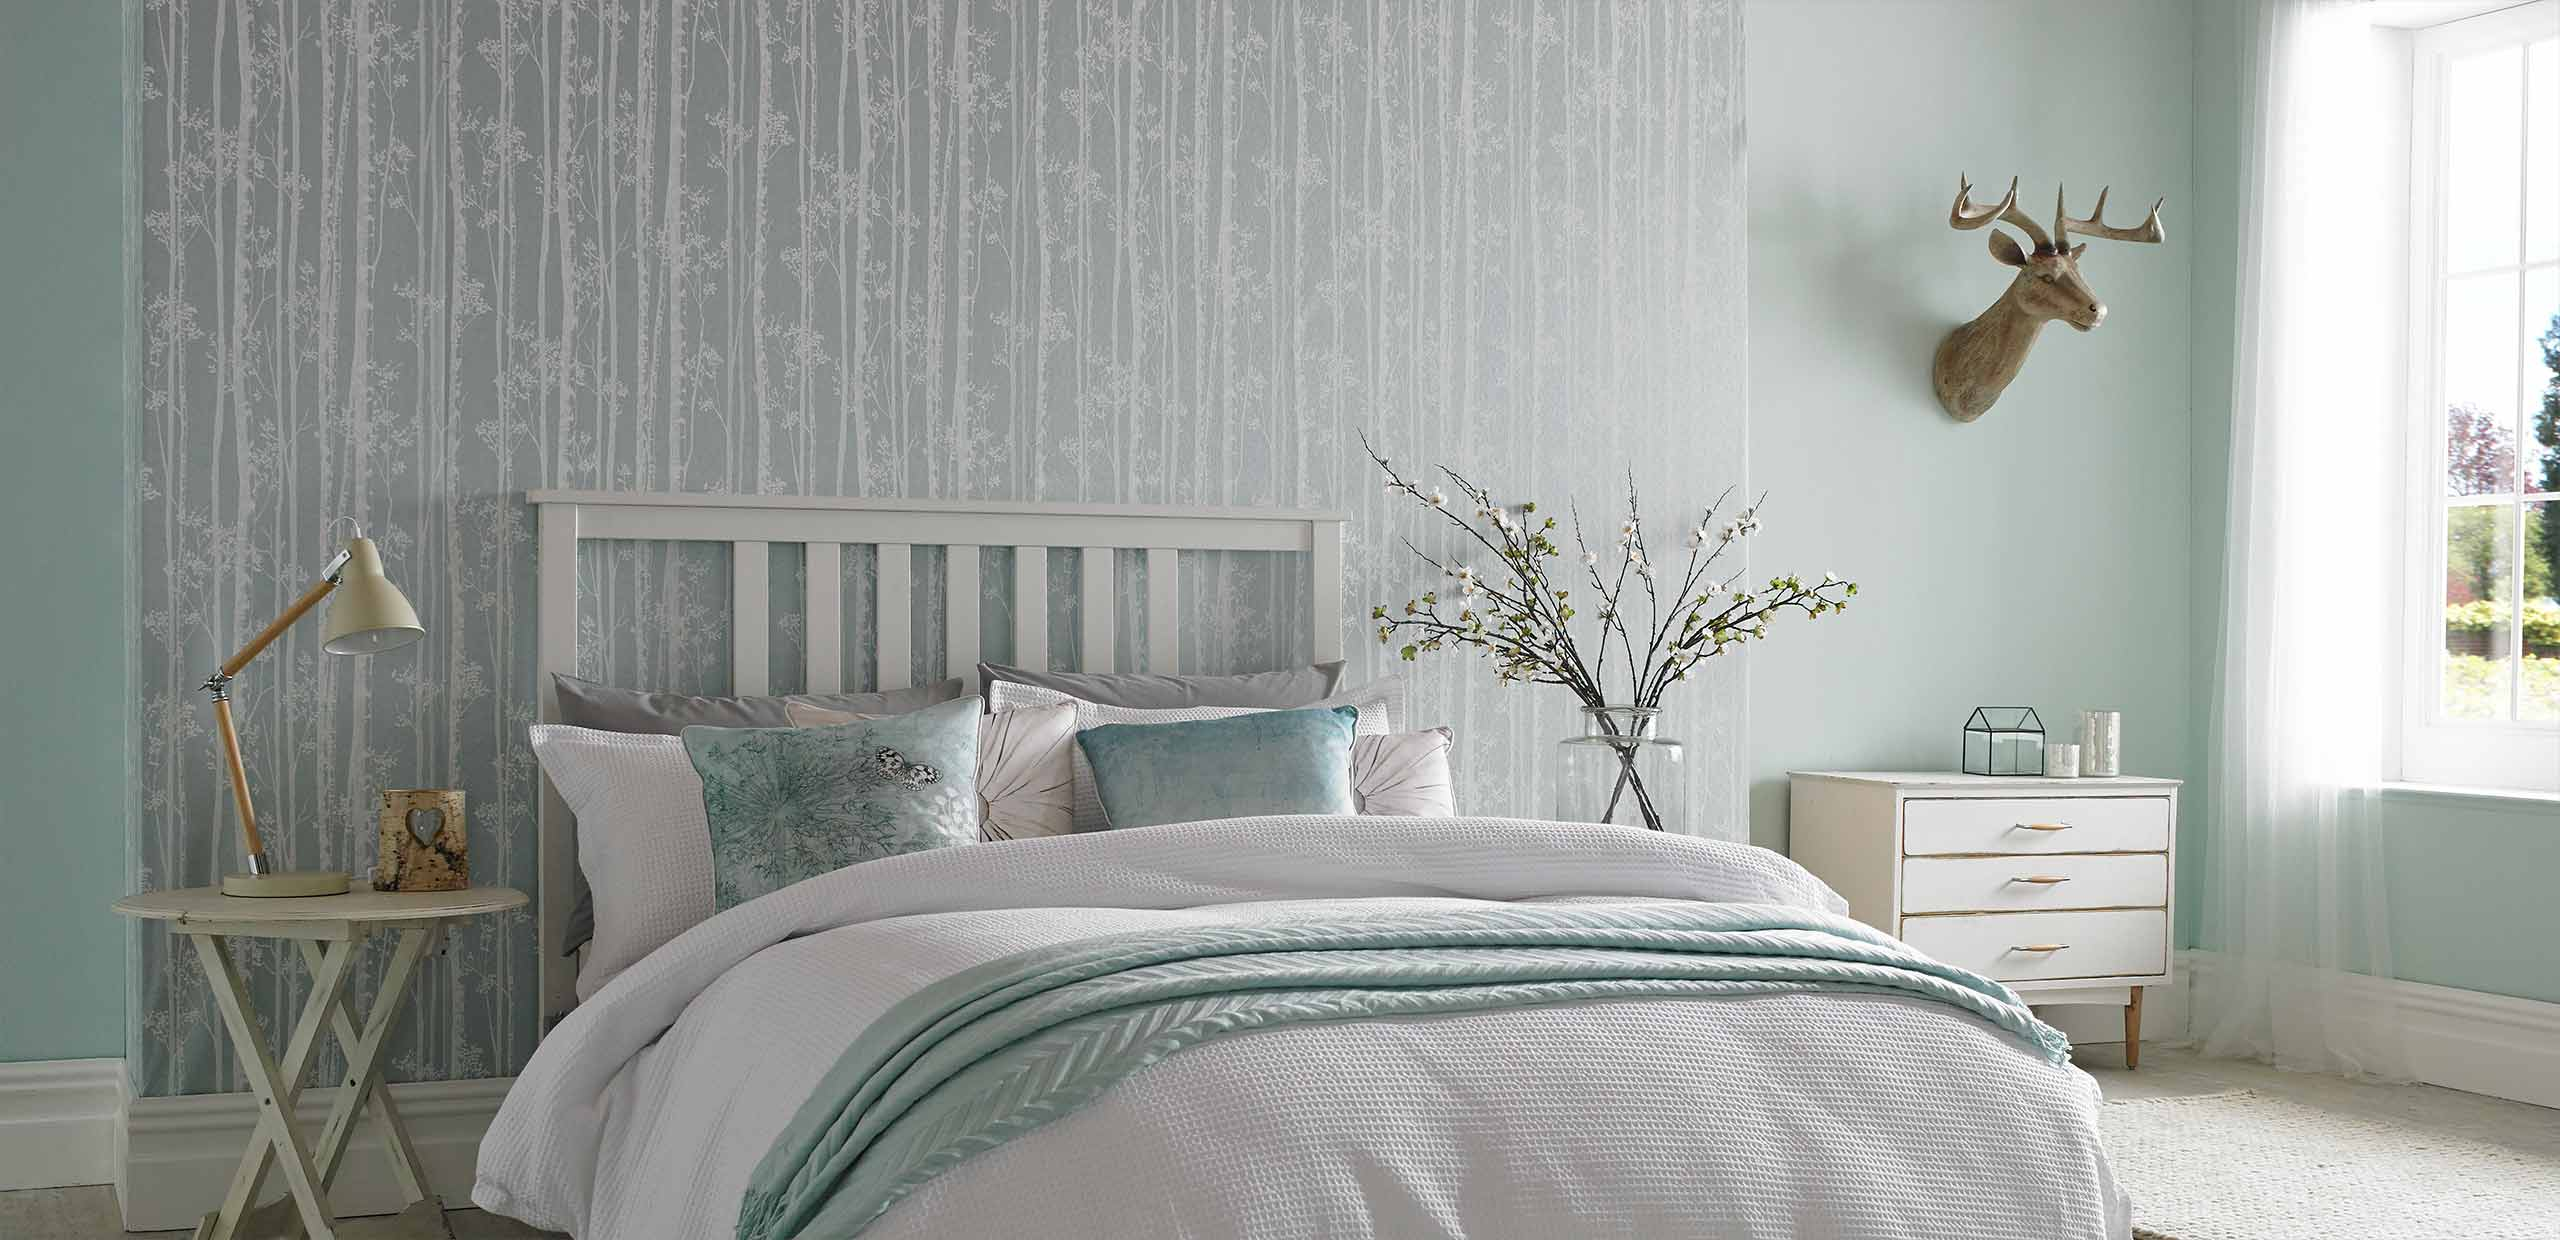 Bedroom wallpaper wall decor ideas for bedrooms for Bedroom ideas wallpaper